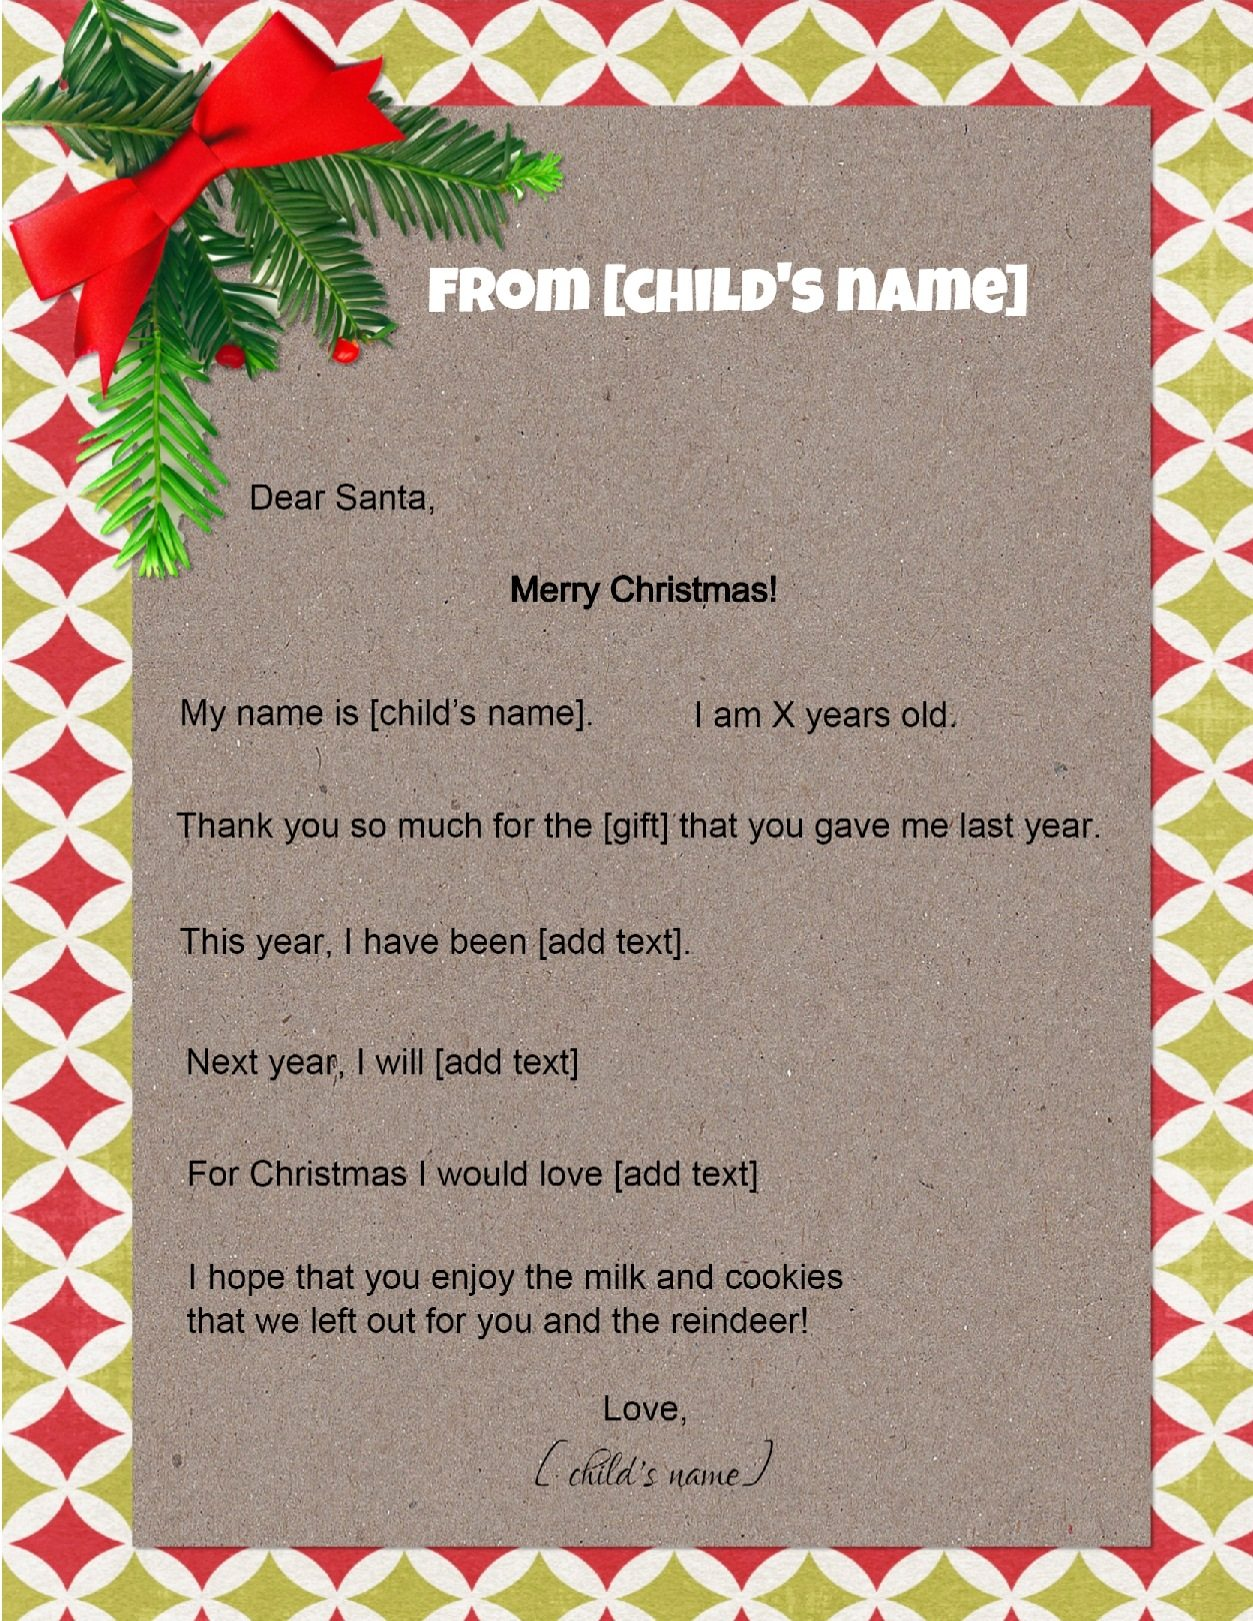 write santa a letter Letters from santa with optional gifts all children love to get letters from santa highly personalised and with tales of the north pole you can add wonderful extras.